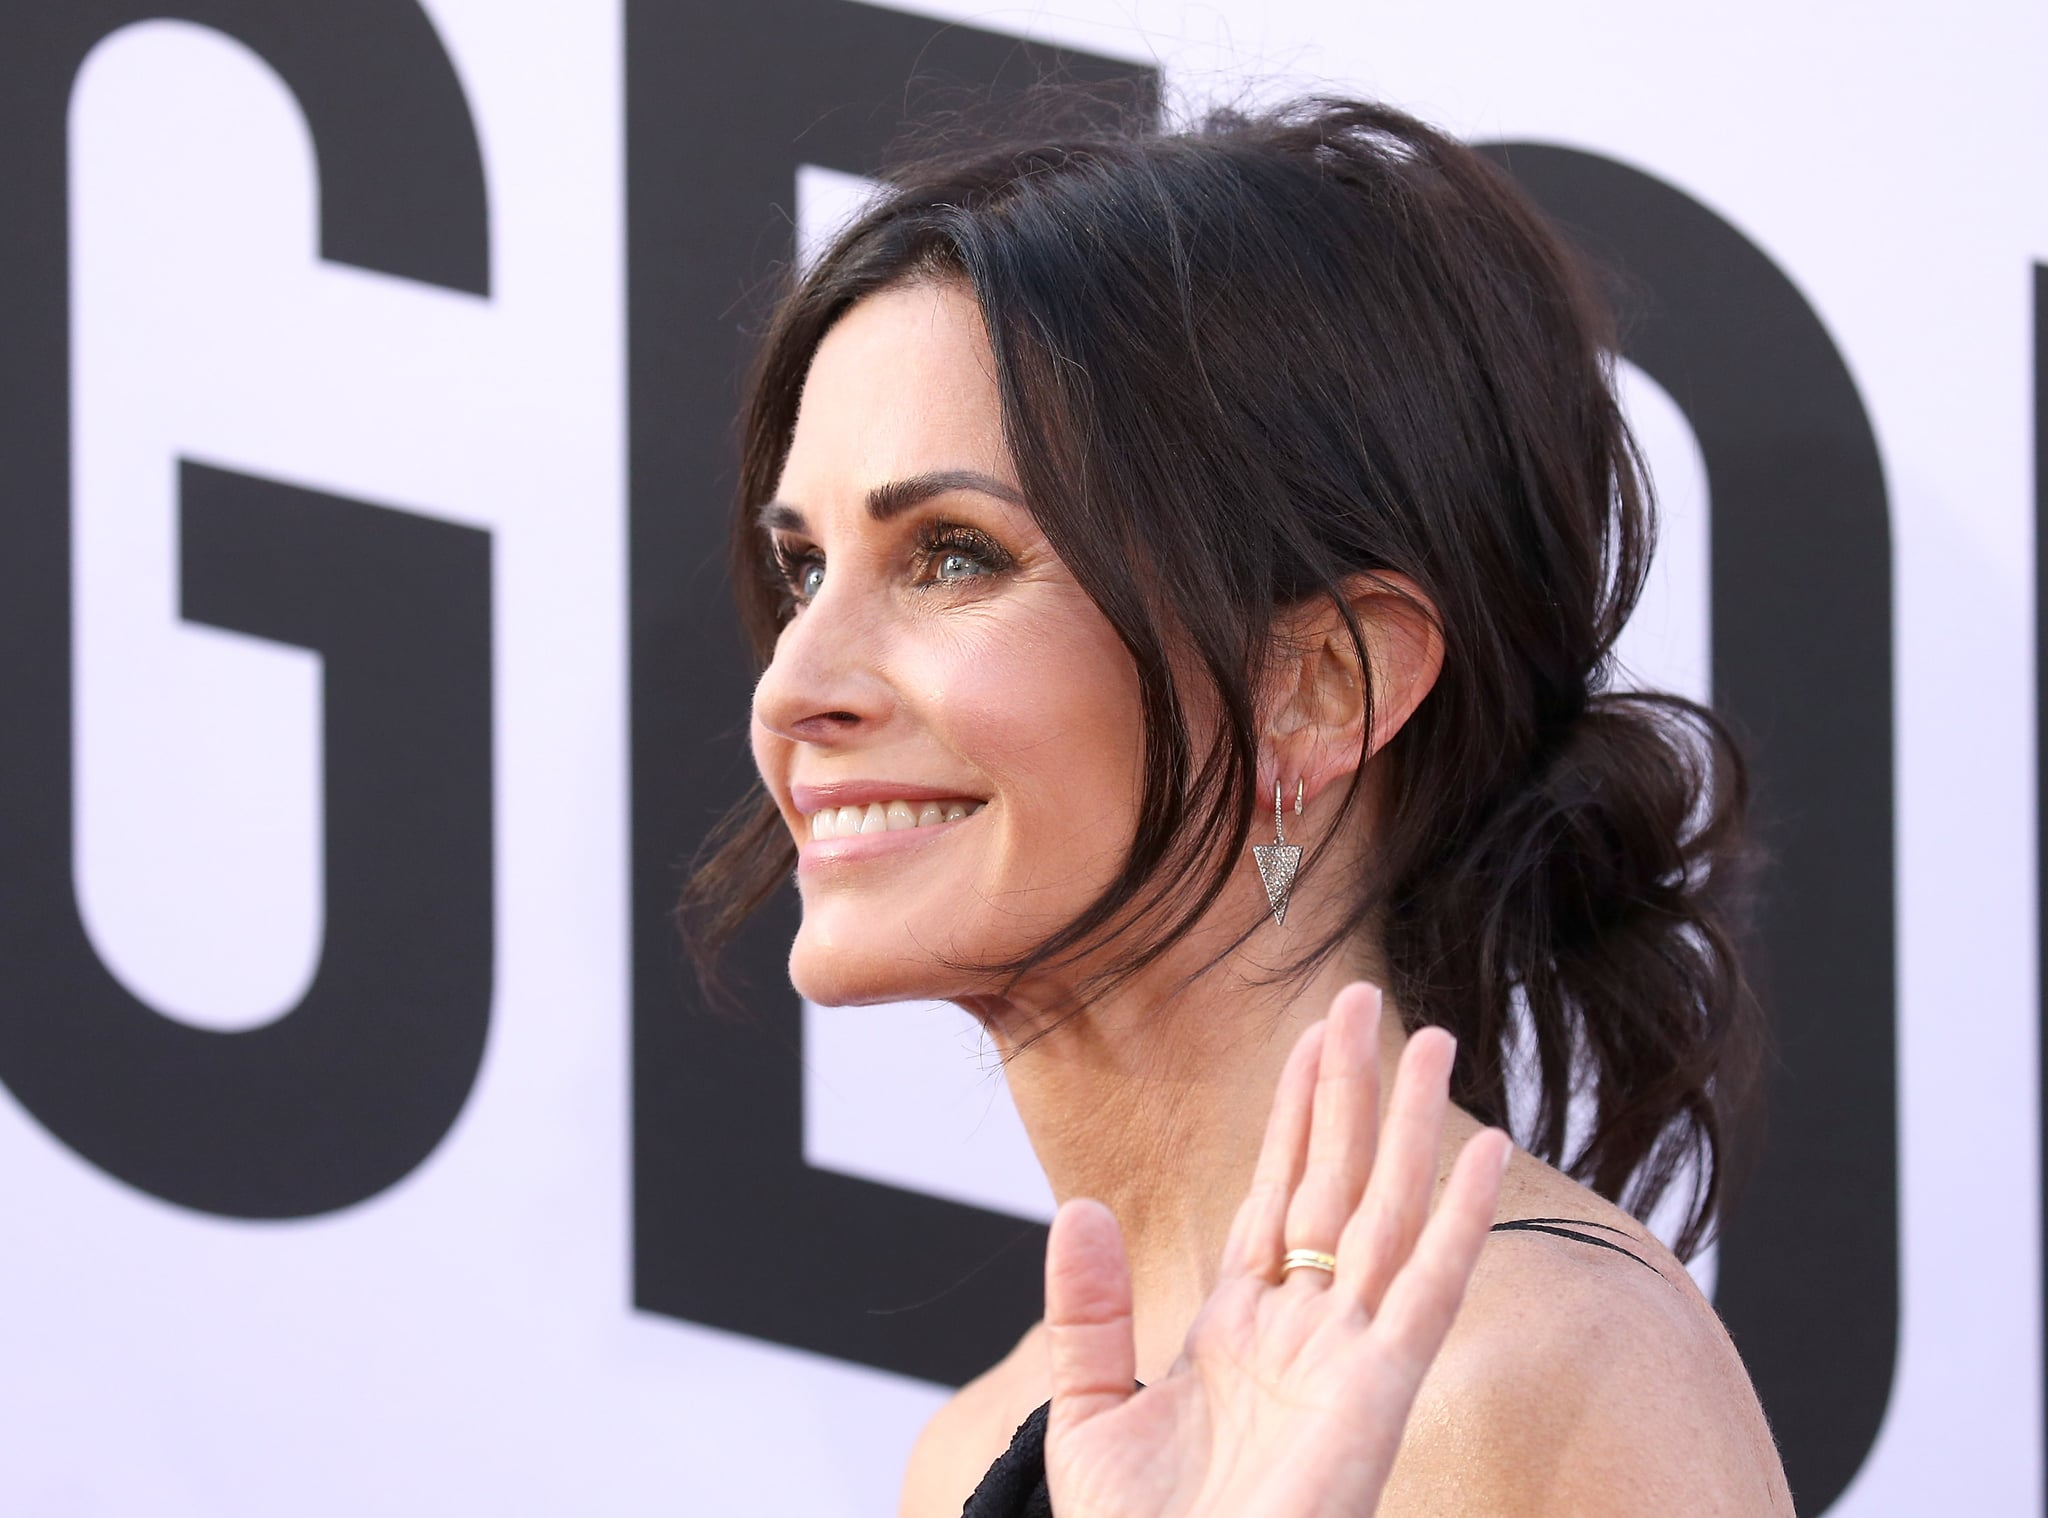 HOLLYWOOD, CA - JUNE 07:  Courteney Cox arrives to the American Film Institute's 46th Life Achievement Award Gala Tribute held on June 7, 2018 in Hollywood, California.  (Photo by Michael Tran/FilmMagic)